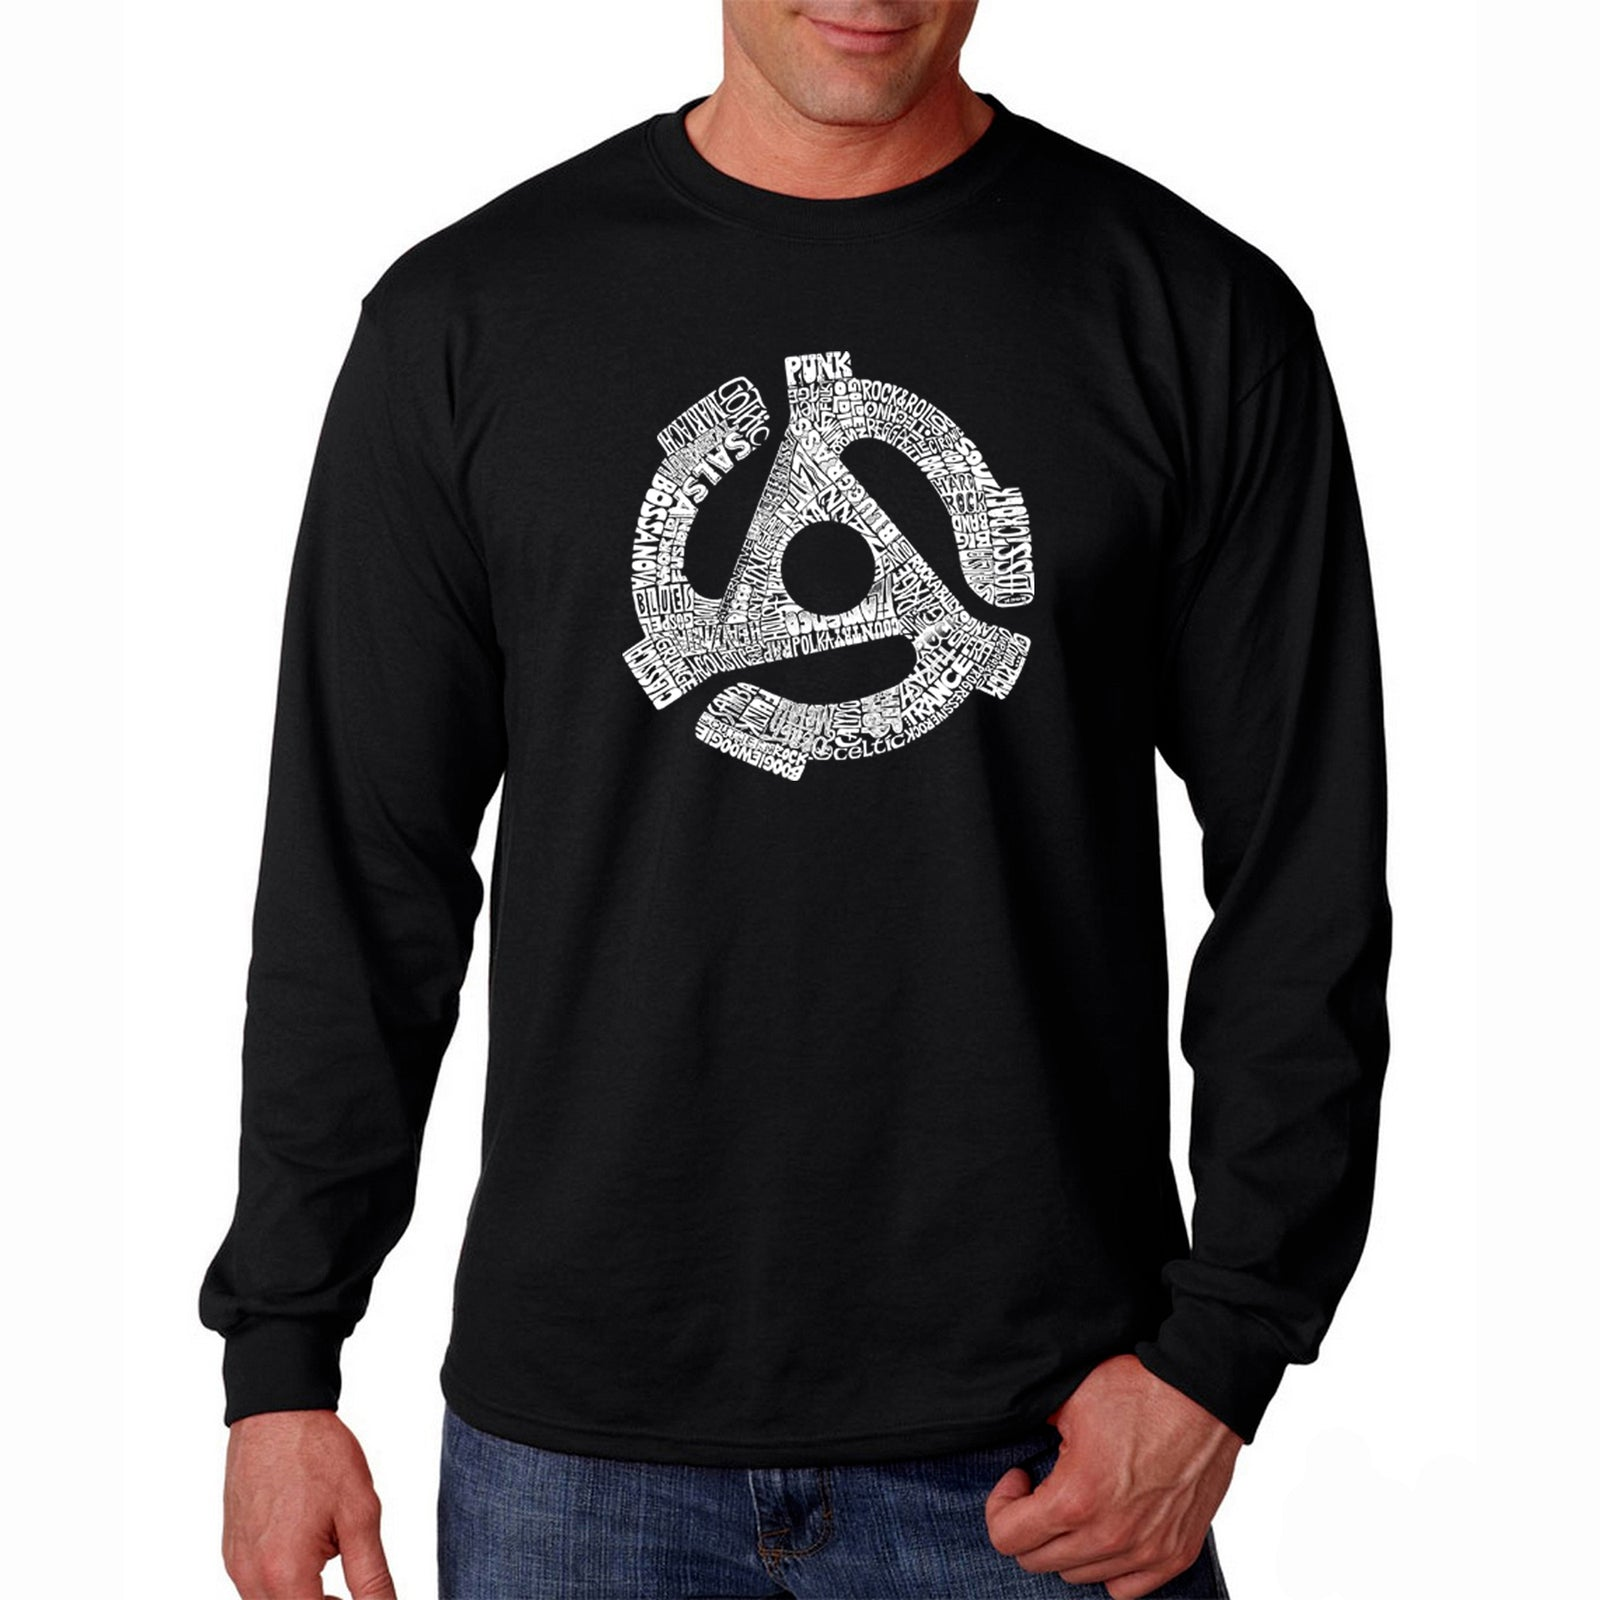 Men's Long Sleeve T-shirt - Record Adapter